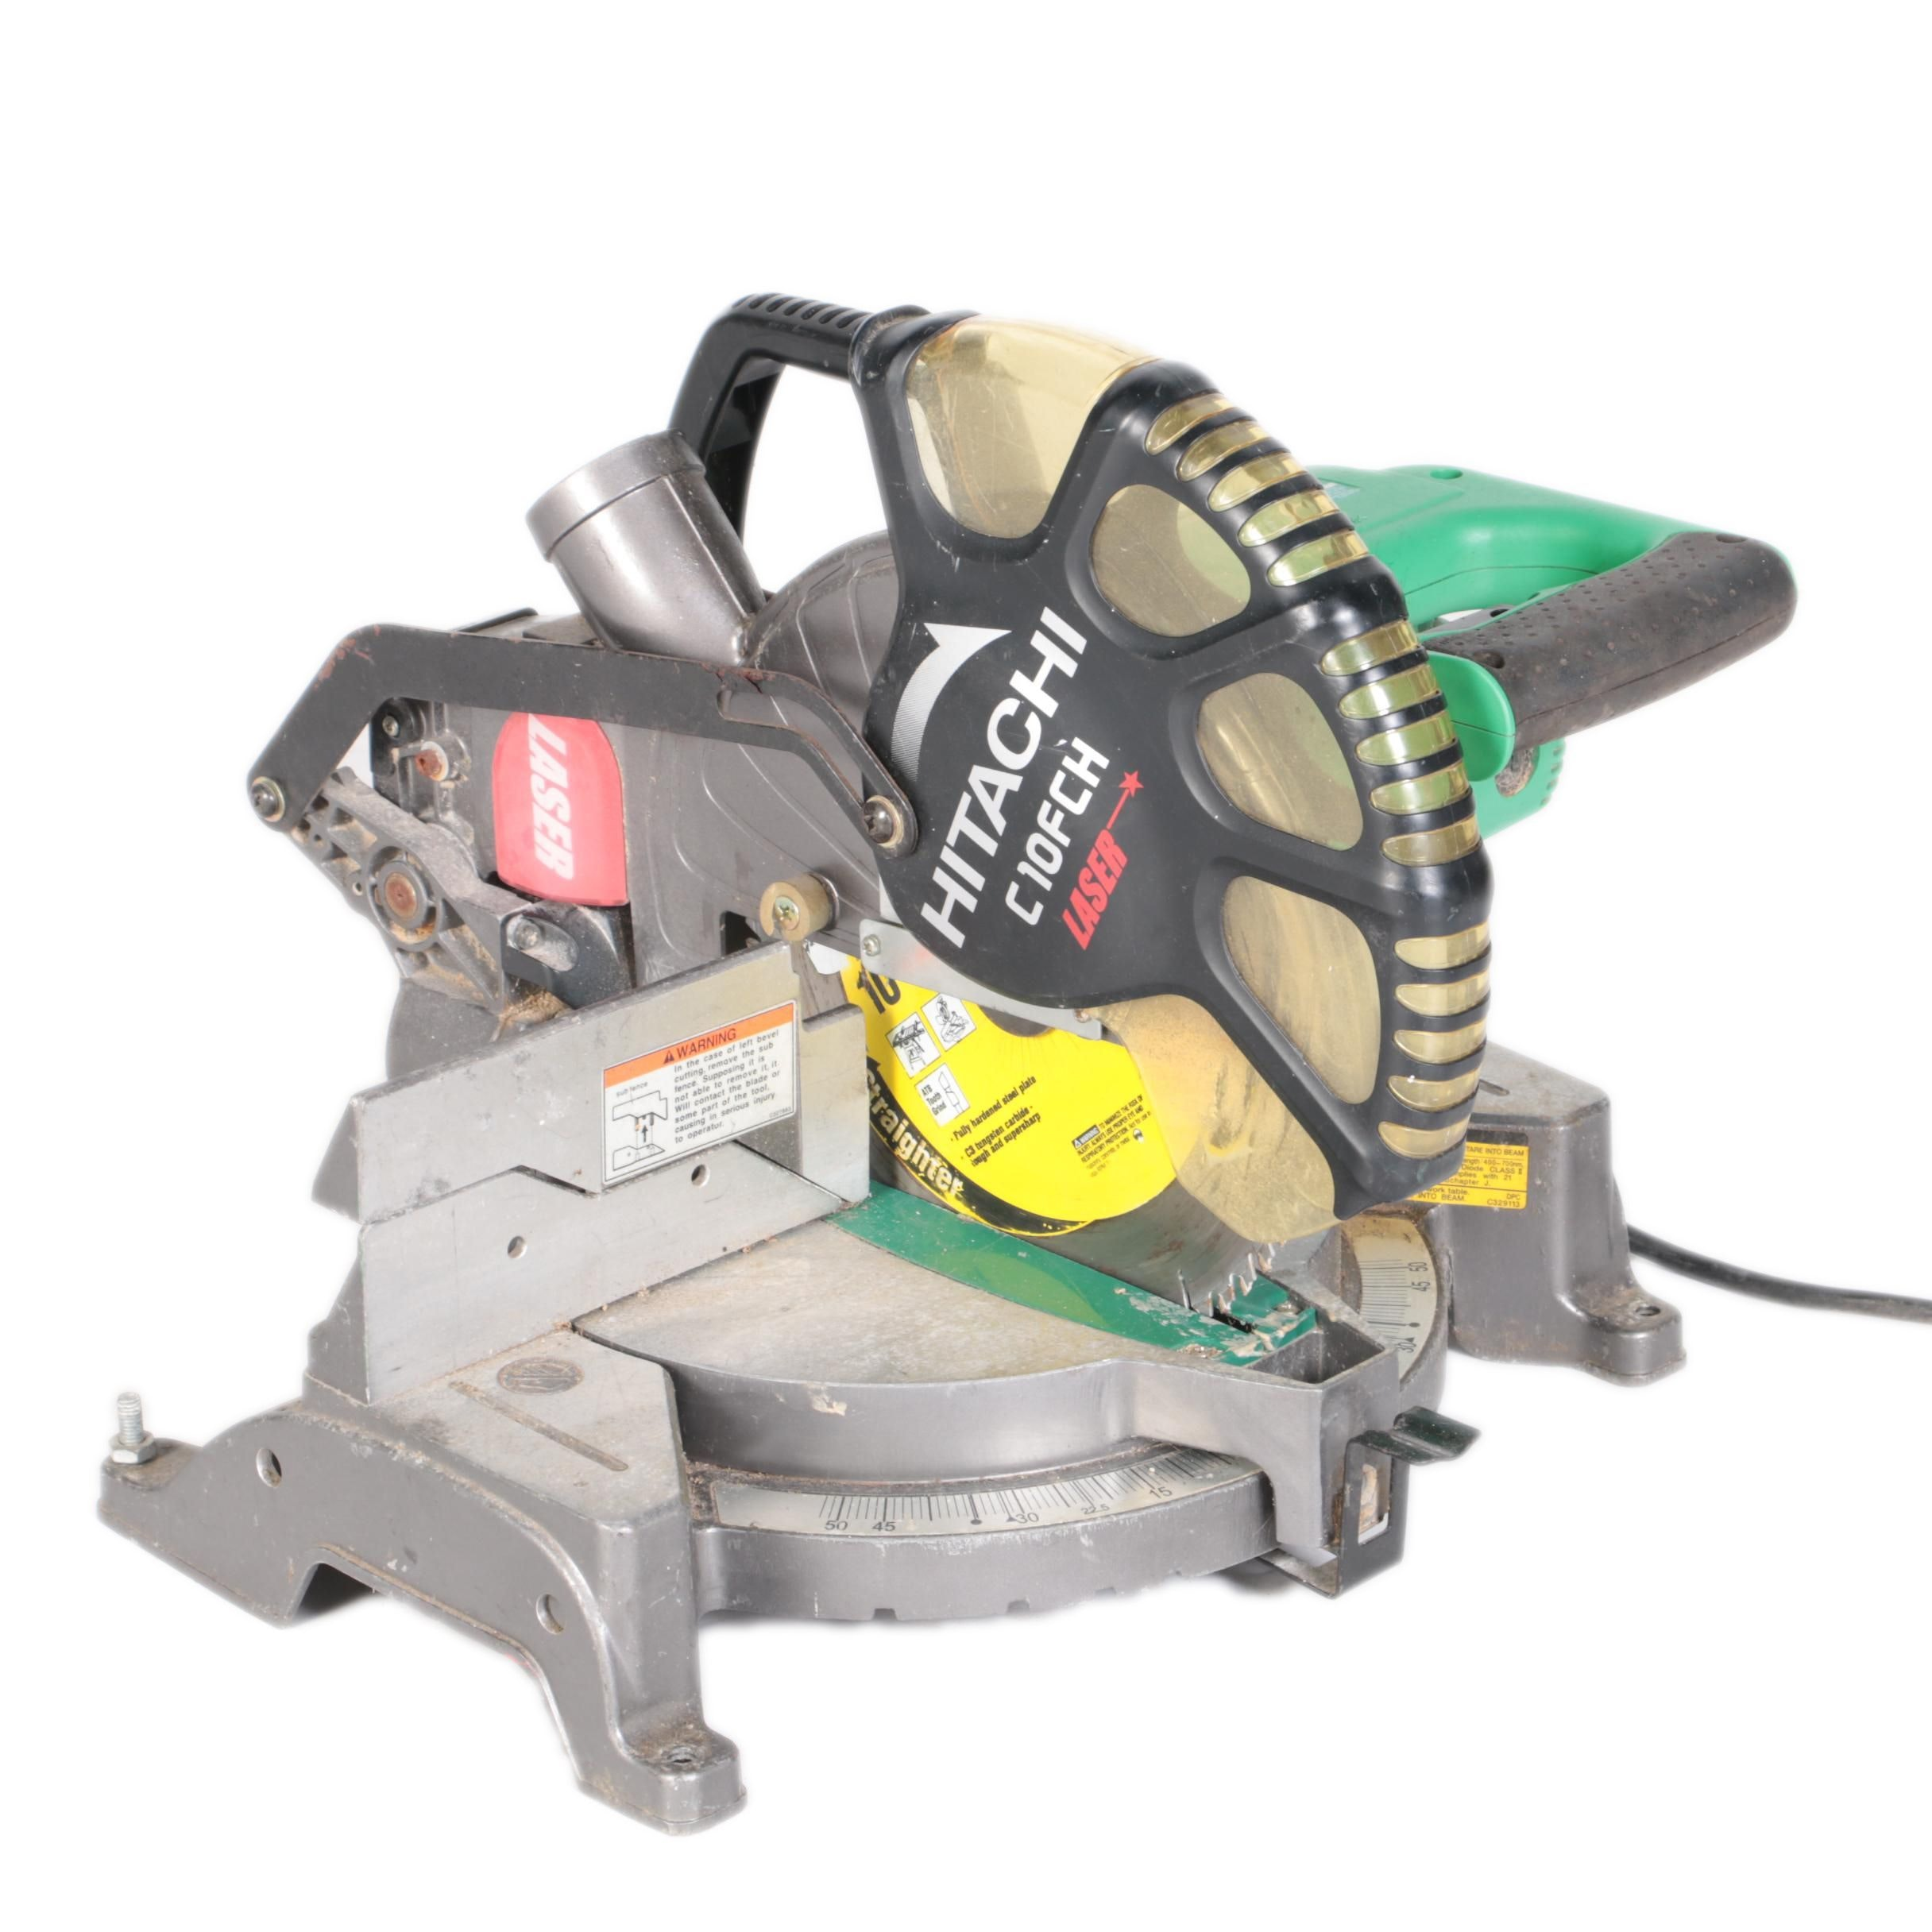 Hitachi C10FCH Laser-Guided Compound Miter Saw